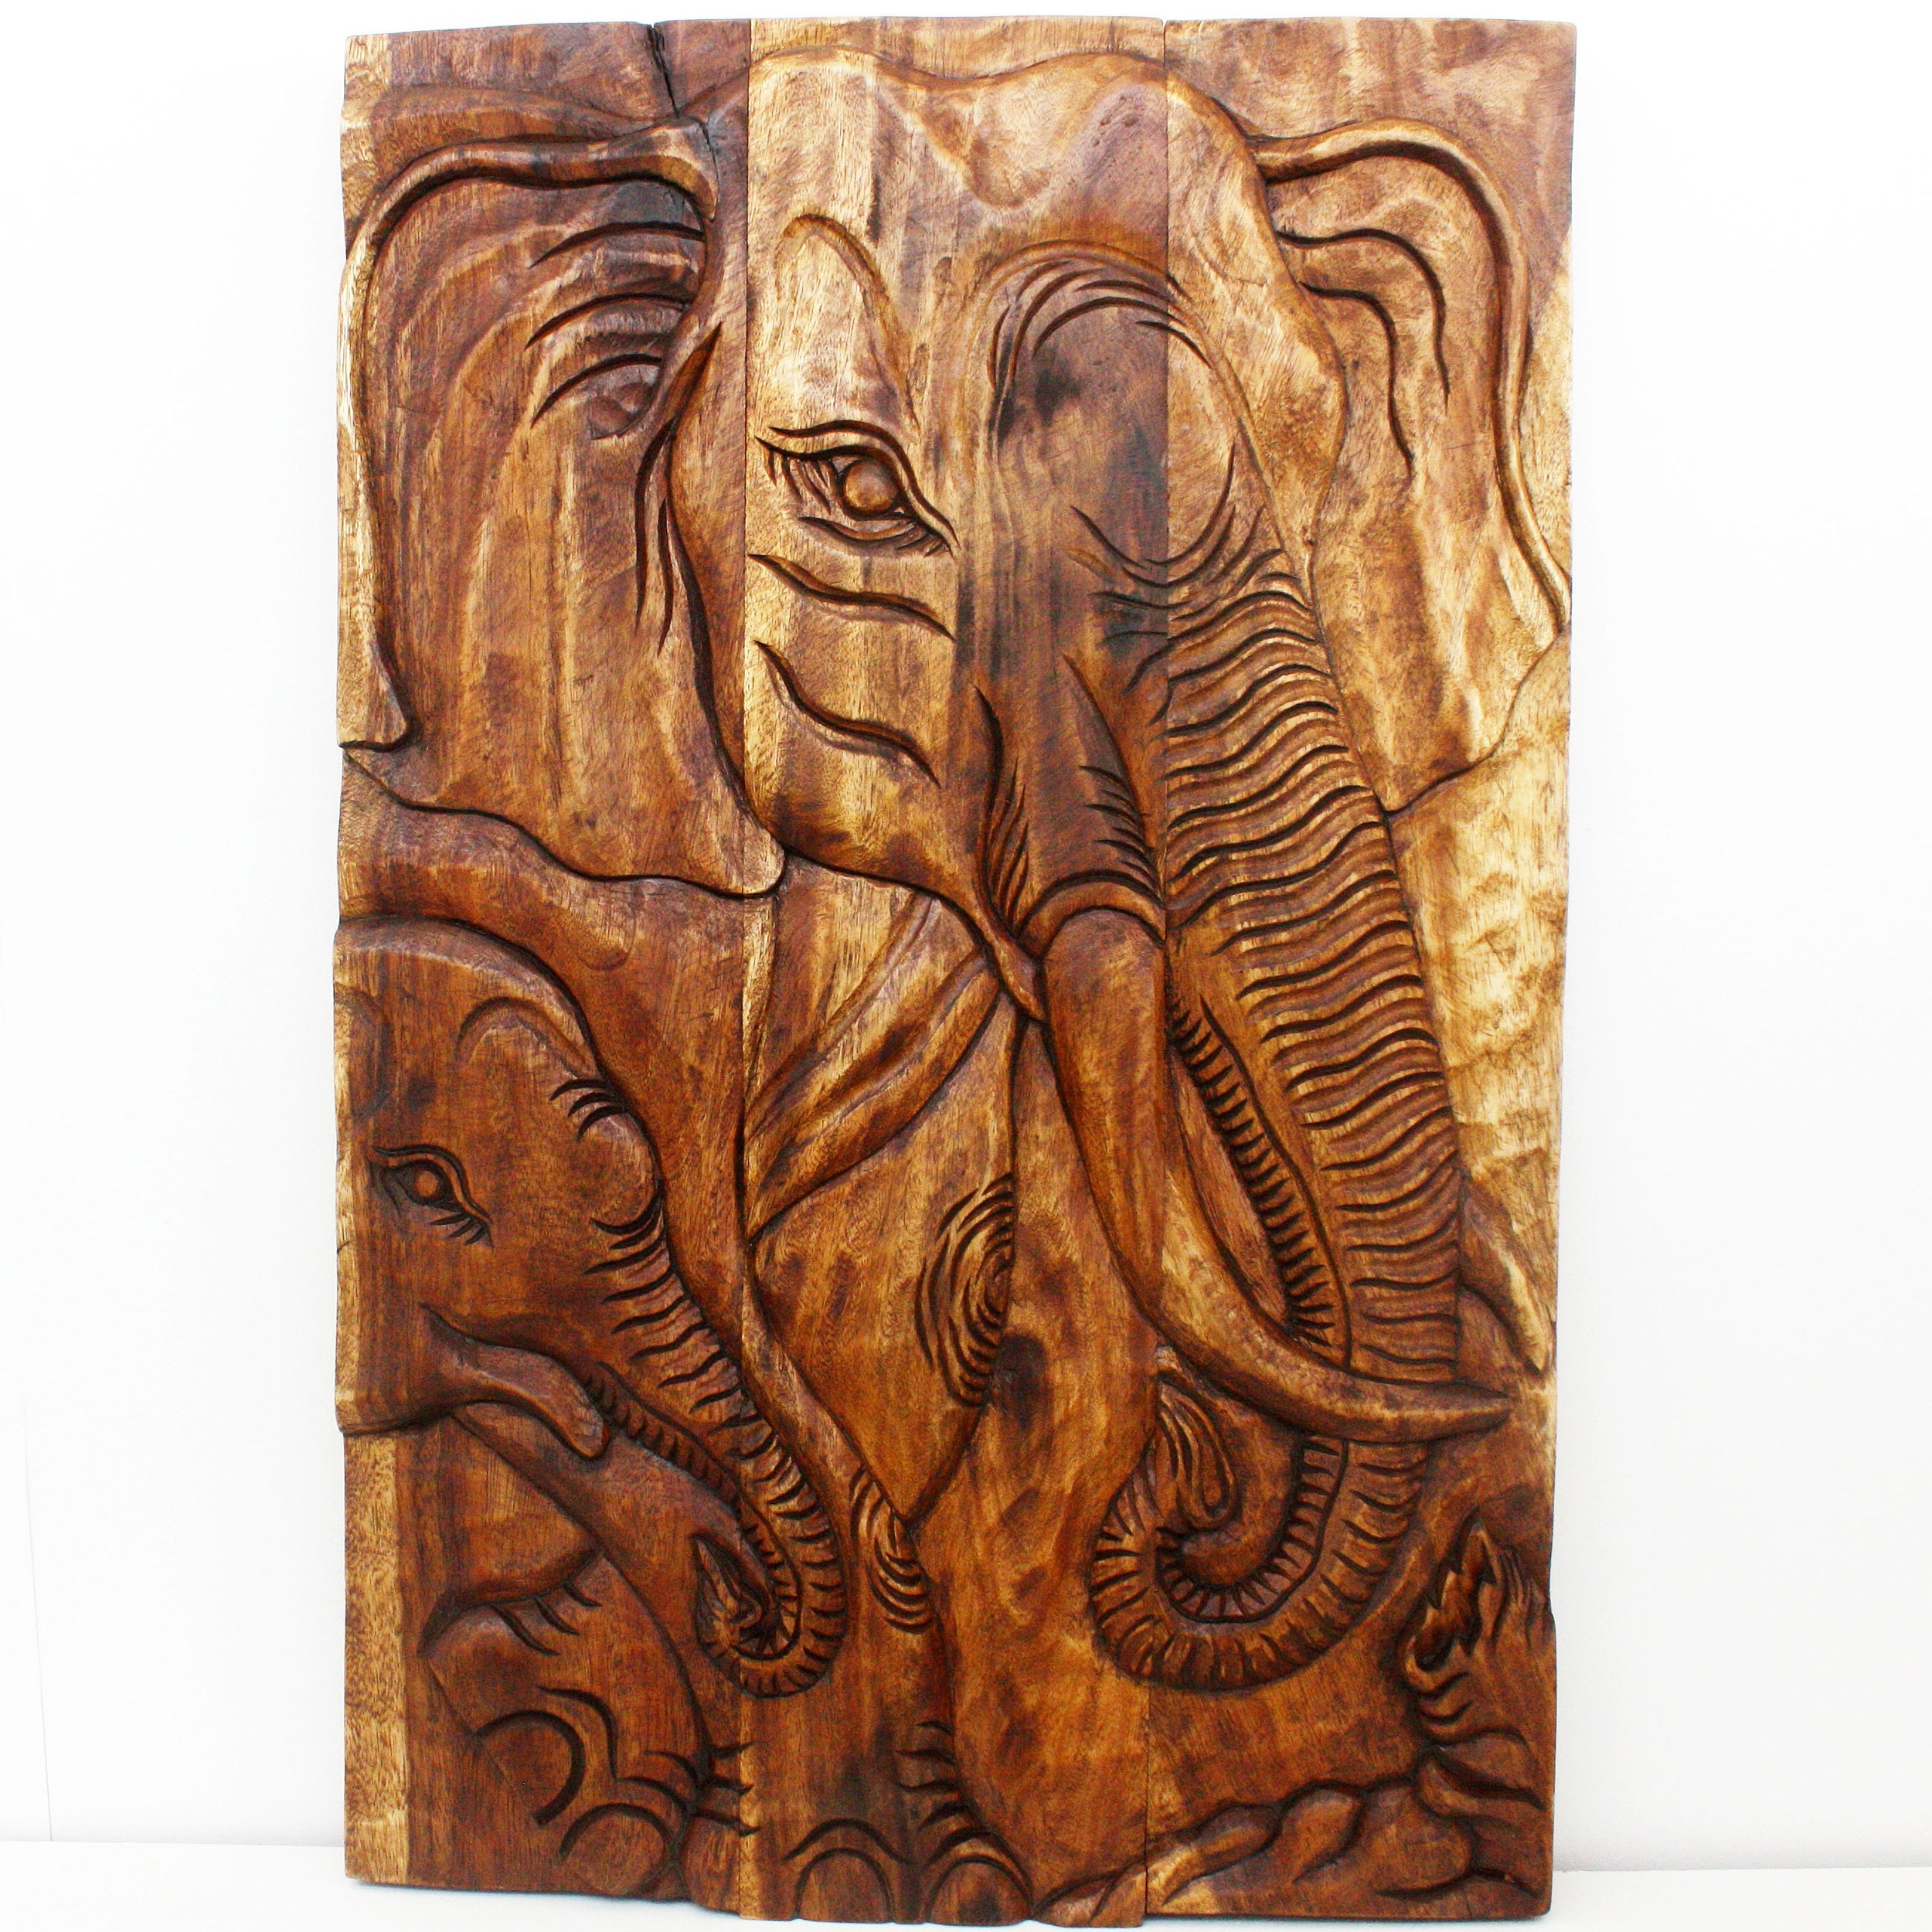 2018 Tree Of Life Wood Carving Wall Art With Regard To Wall Decor Thailand Wood Art Panels Nature Carvings (View 14 of 15)